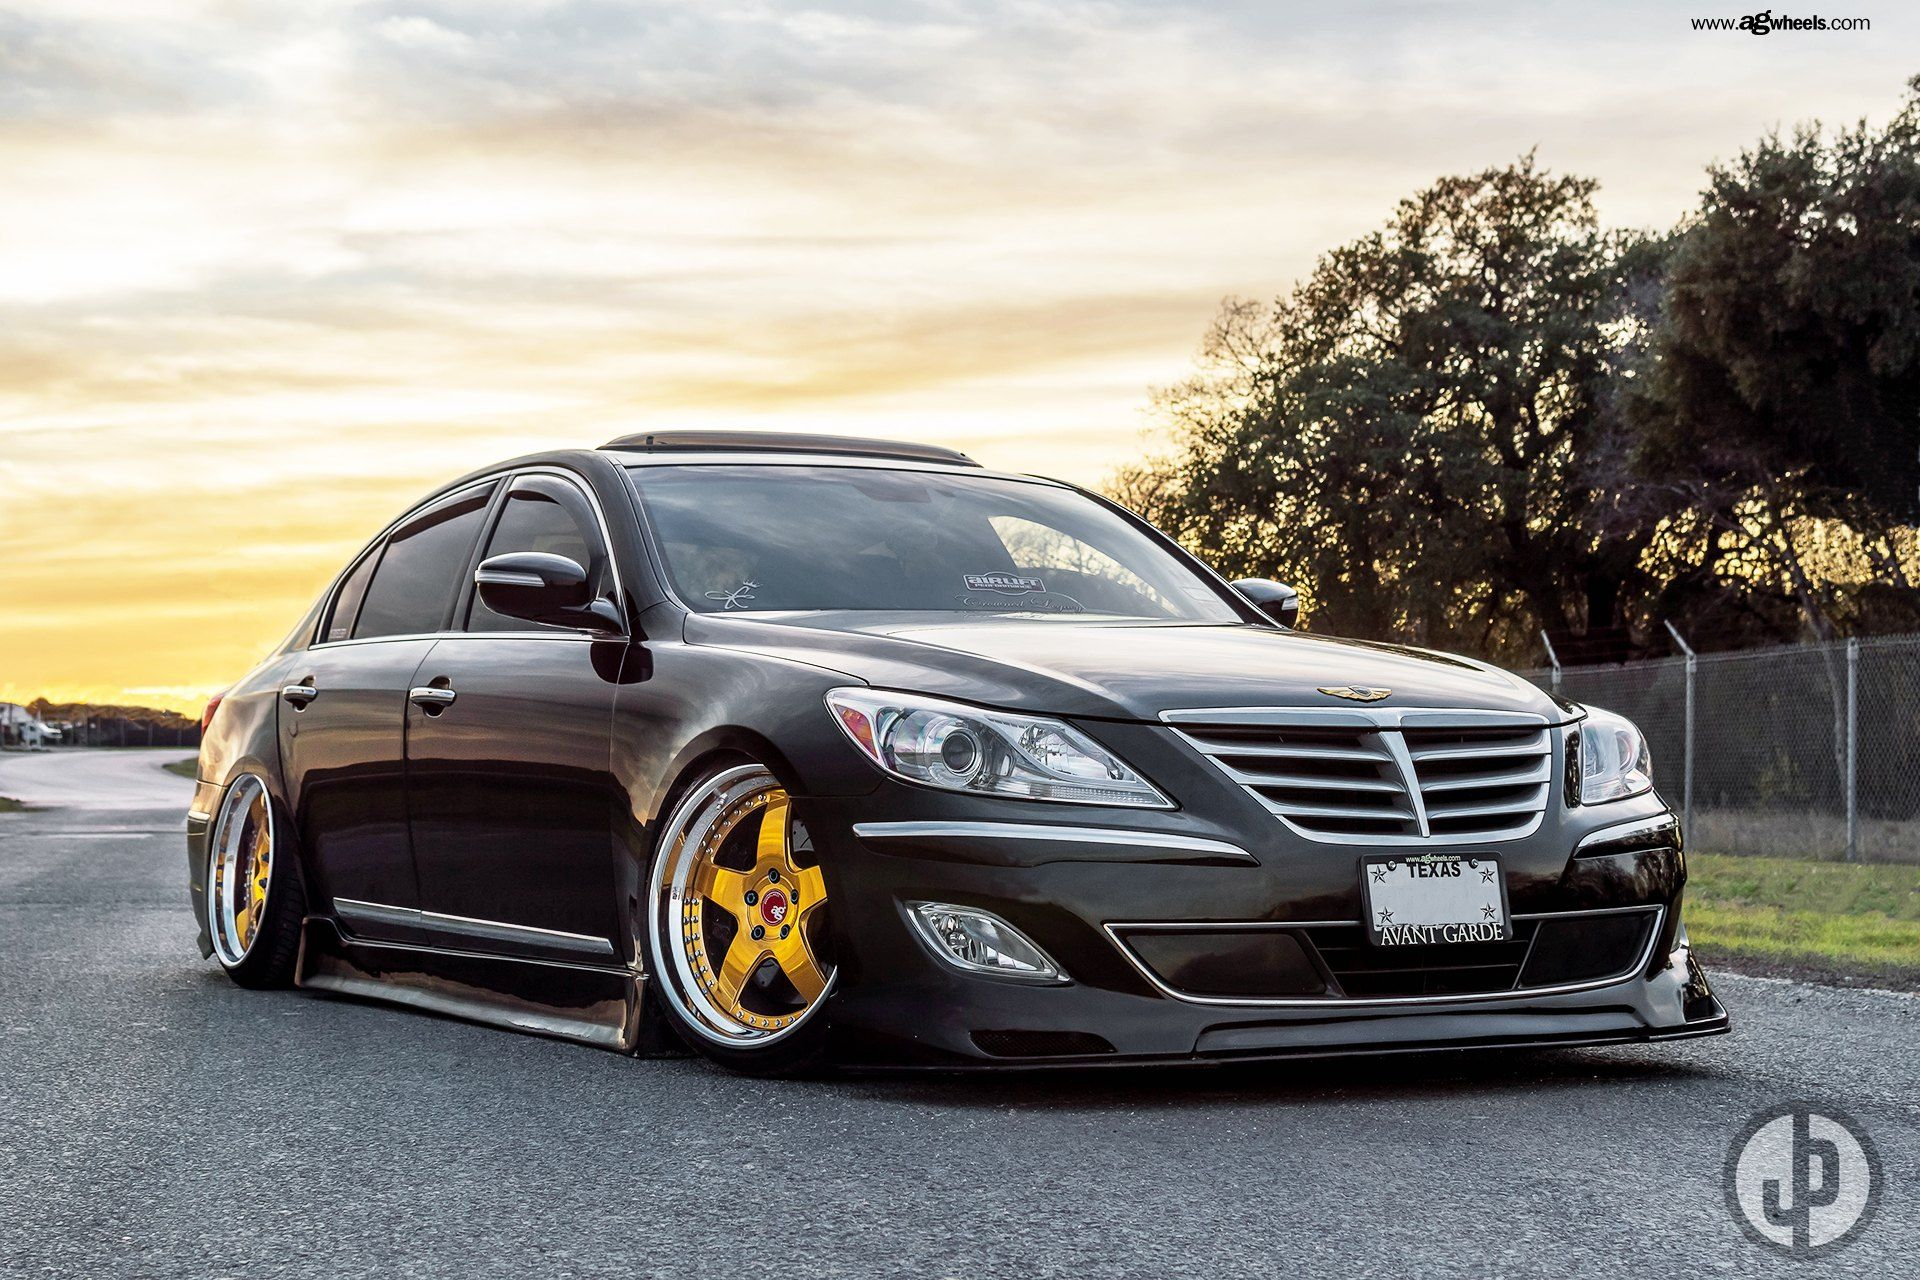 Rate this customized stanced Hyundai Genesis on a scale